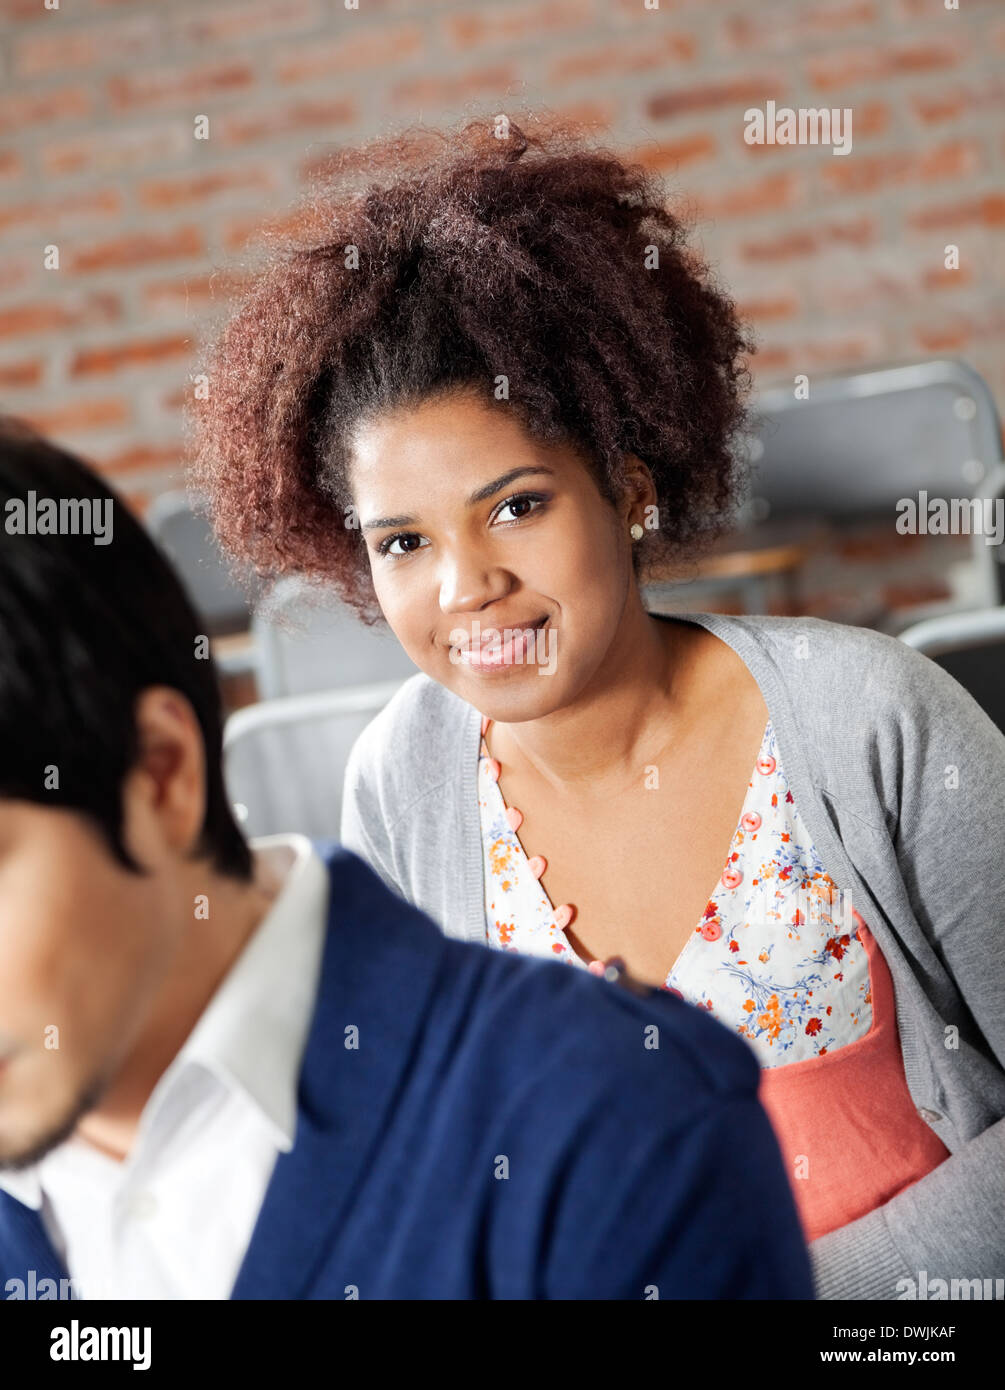 College Student With Classmate In Classroom - Stock Image